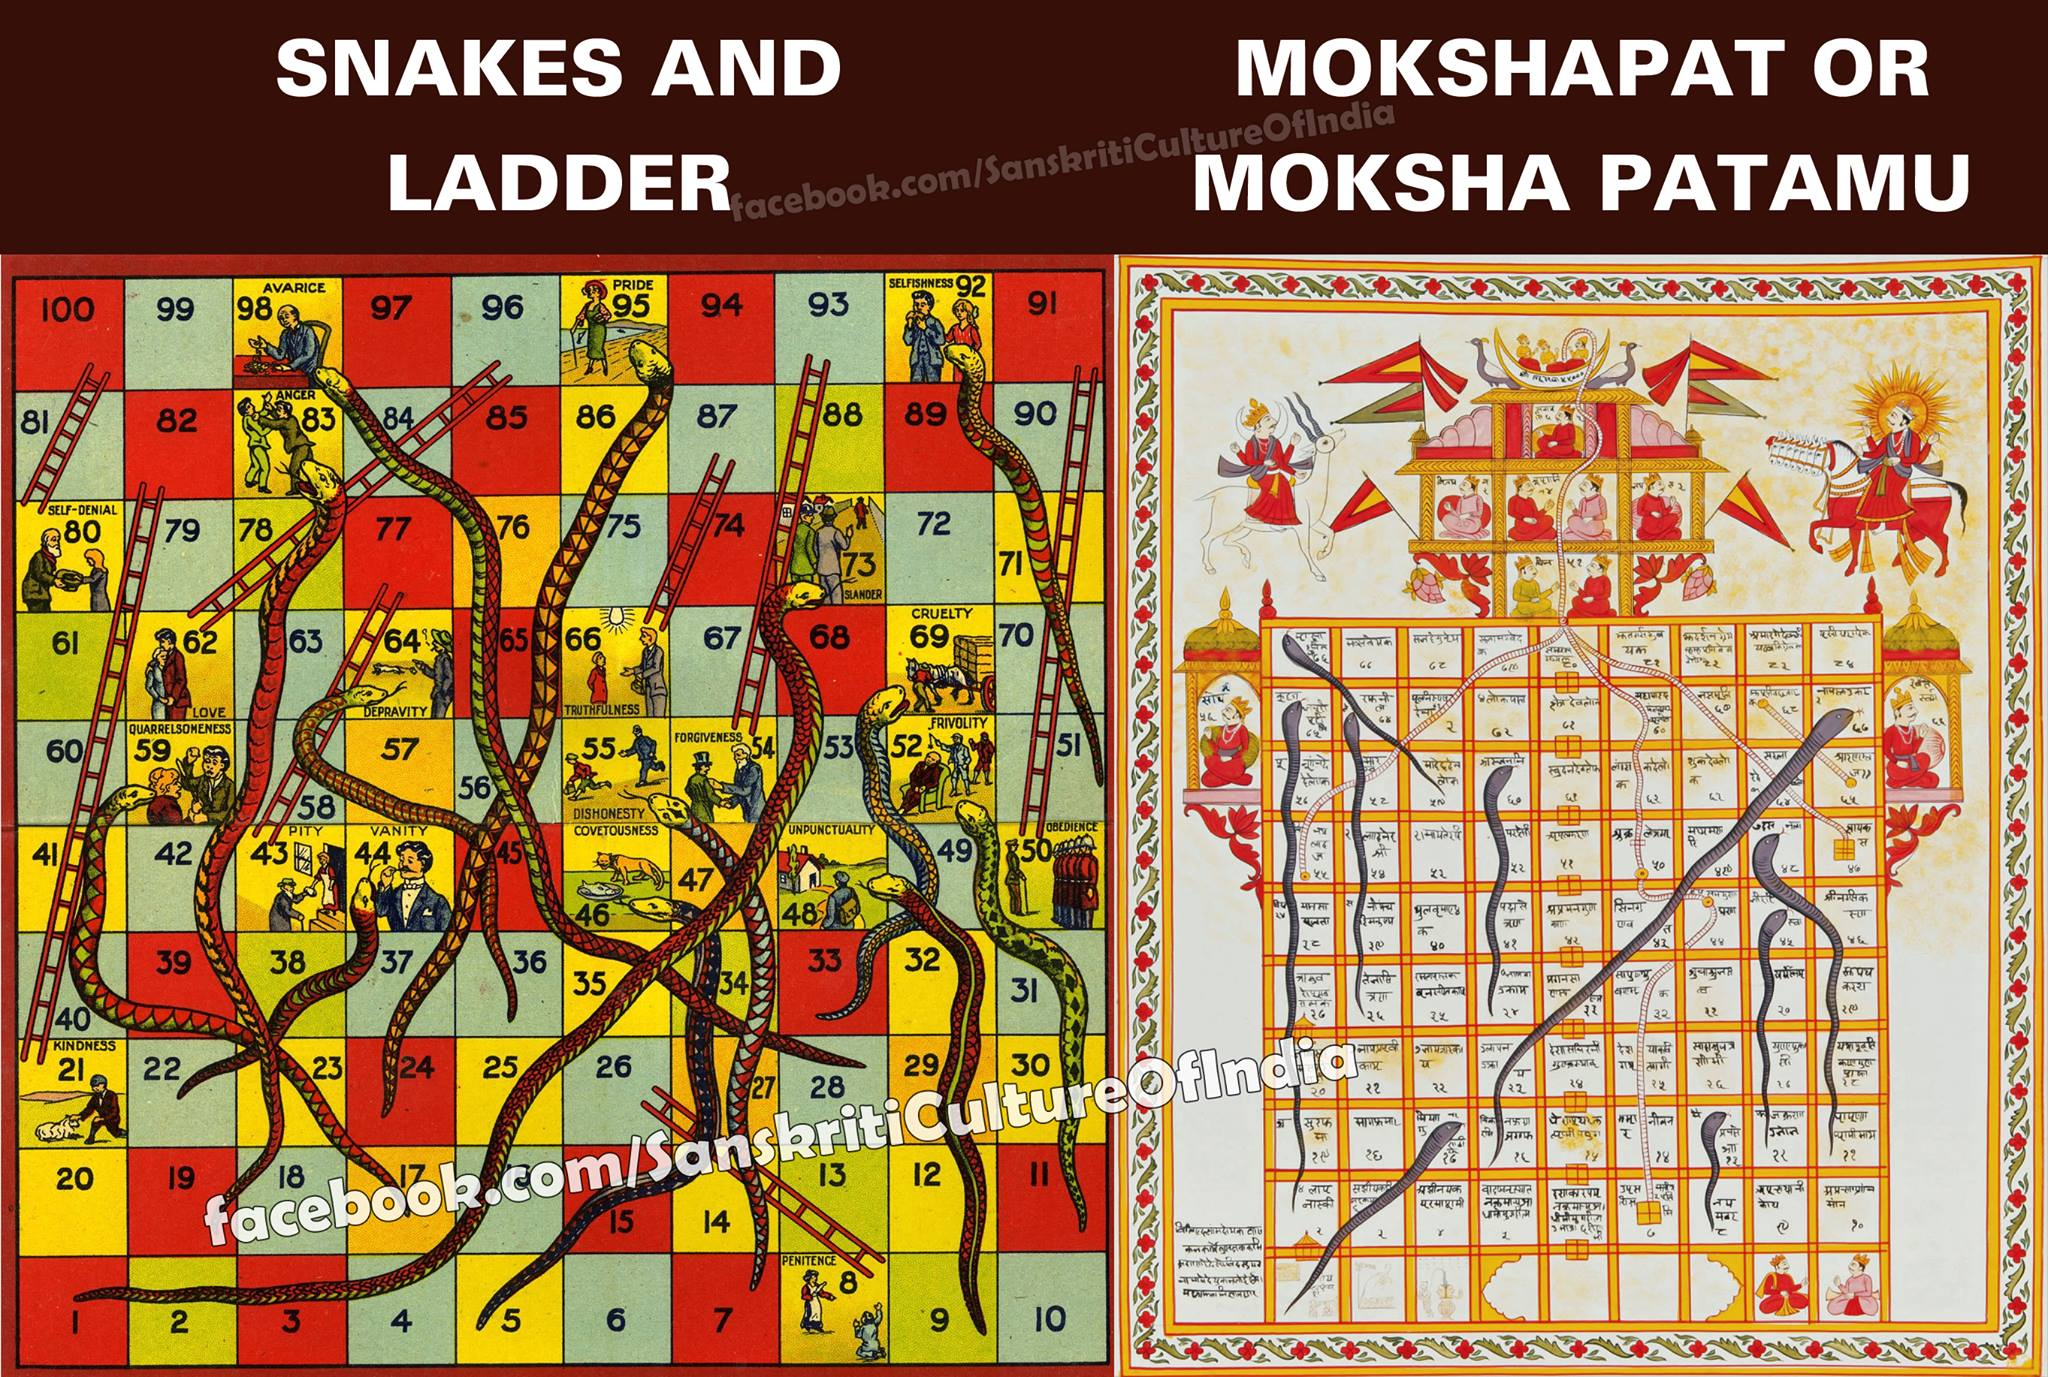 Snakes and Ladders, originated in ancient India,